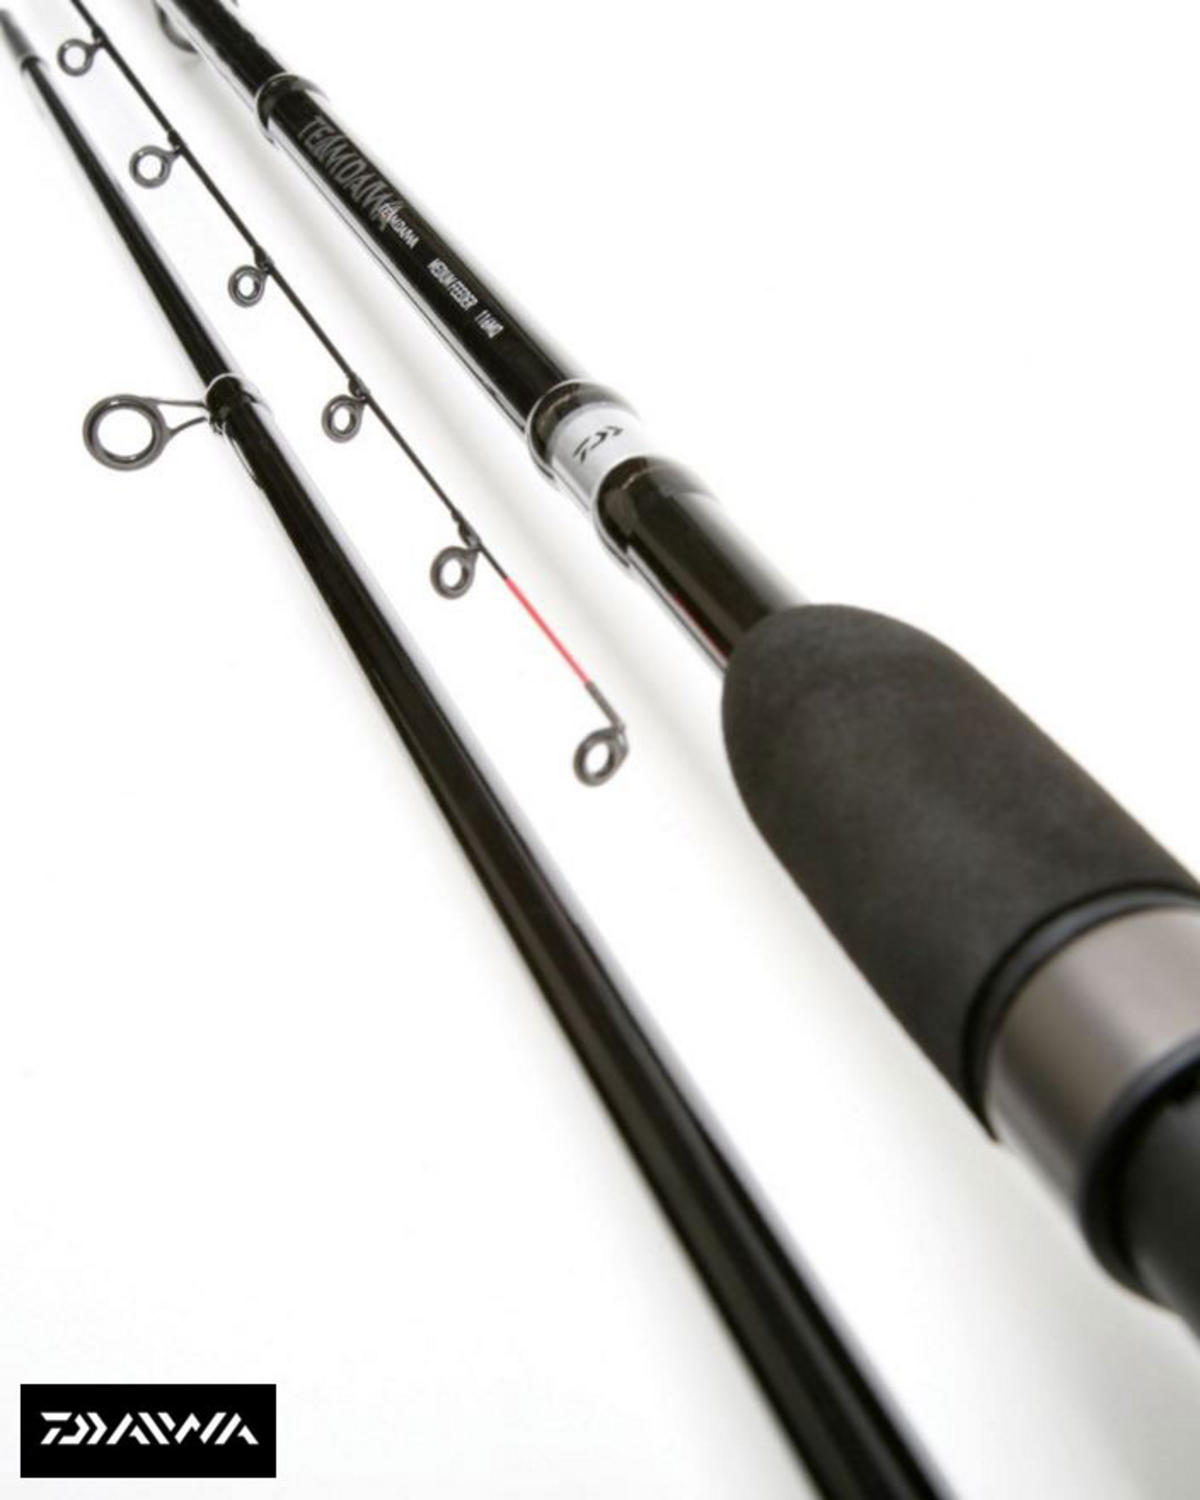 EX DISPLAY TEAM DAIWA FEEDER ROD 12'6' FEEDER POWER QUIVER Model No. TDF126PQ-AU